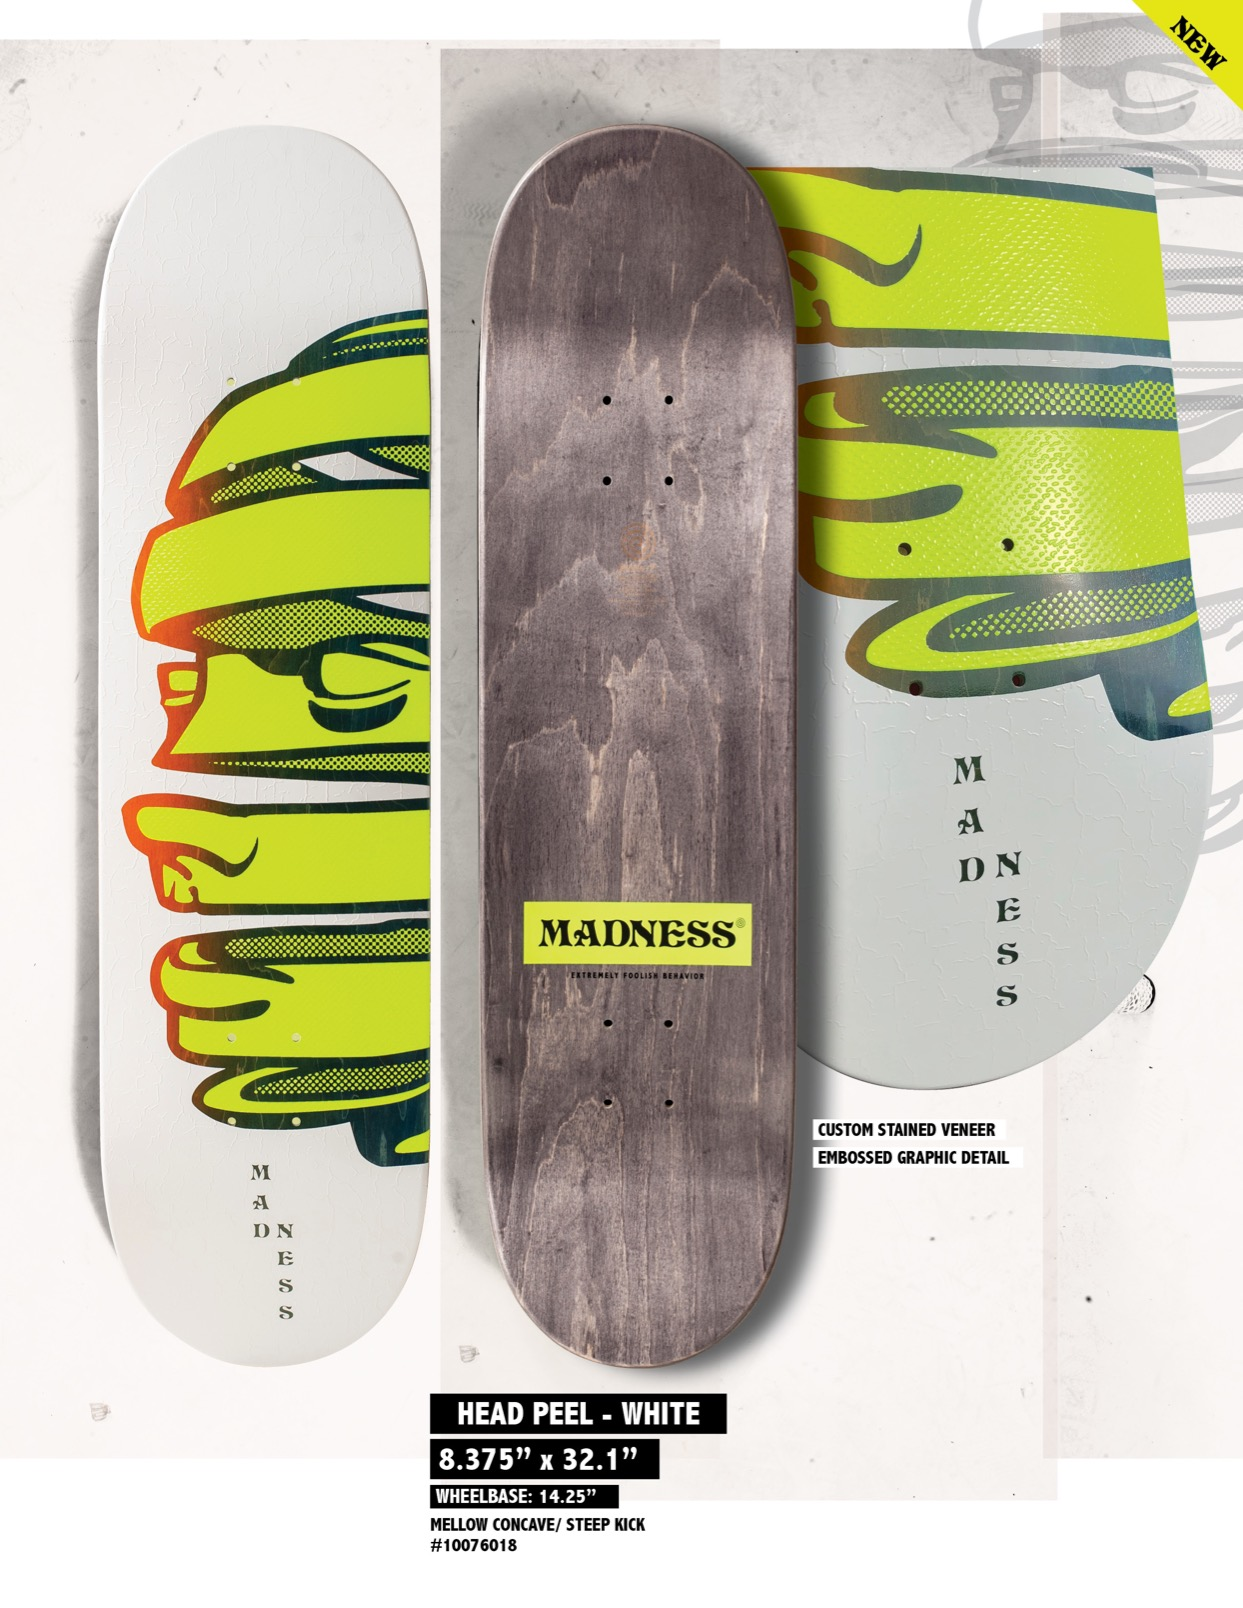 Madness_Skateboards_Head_Peal_Eric_Wollam_White.jpg